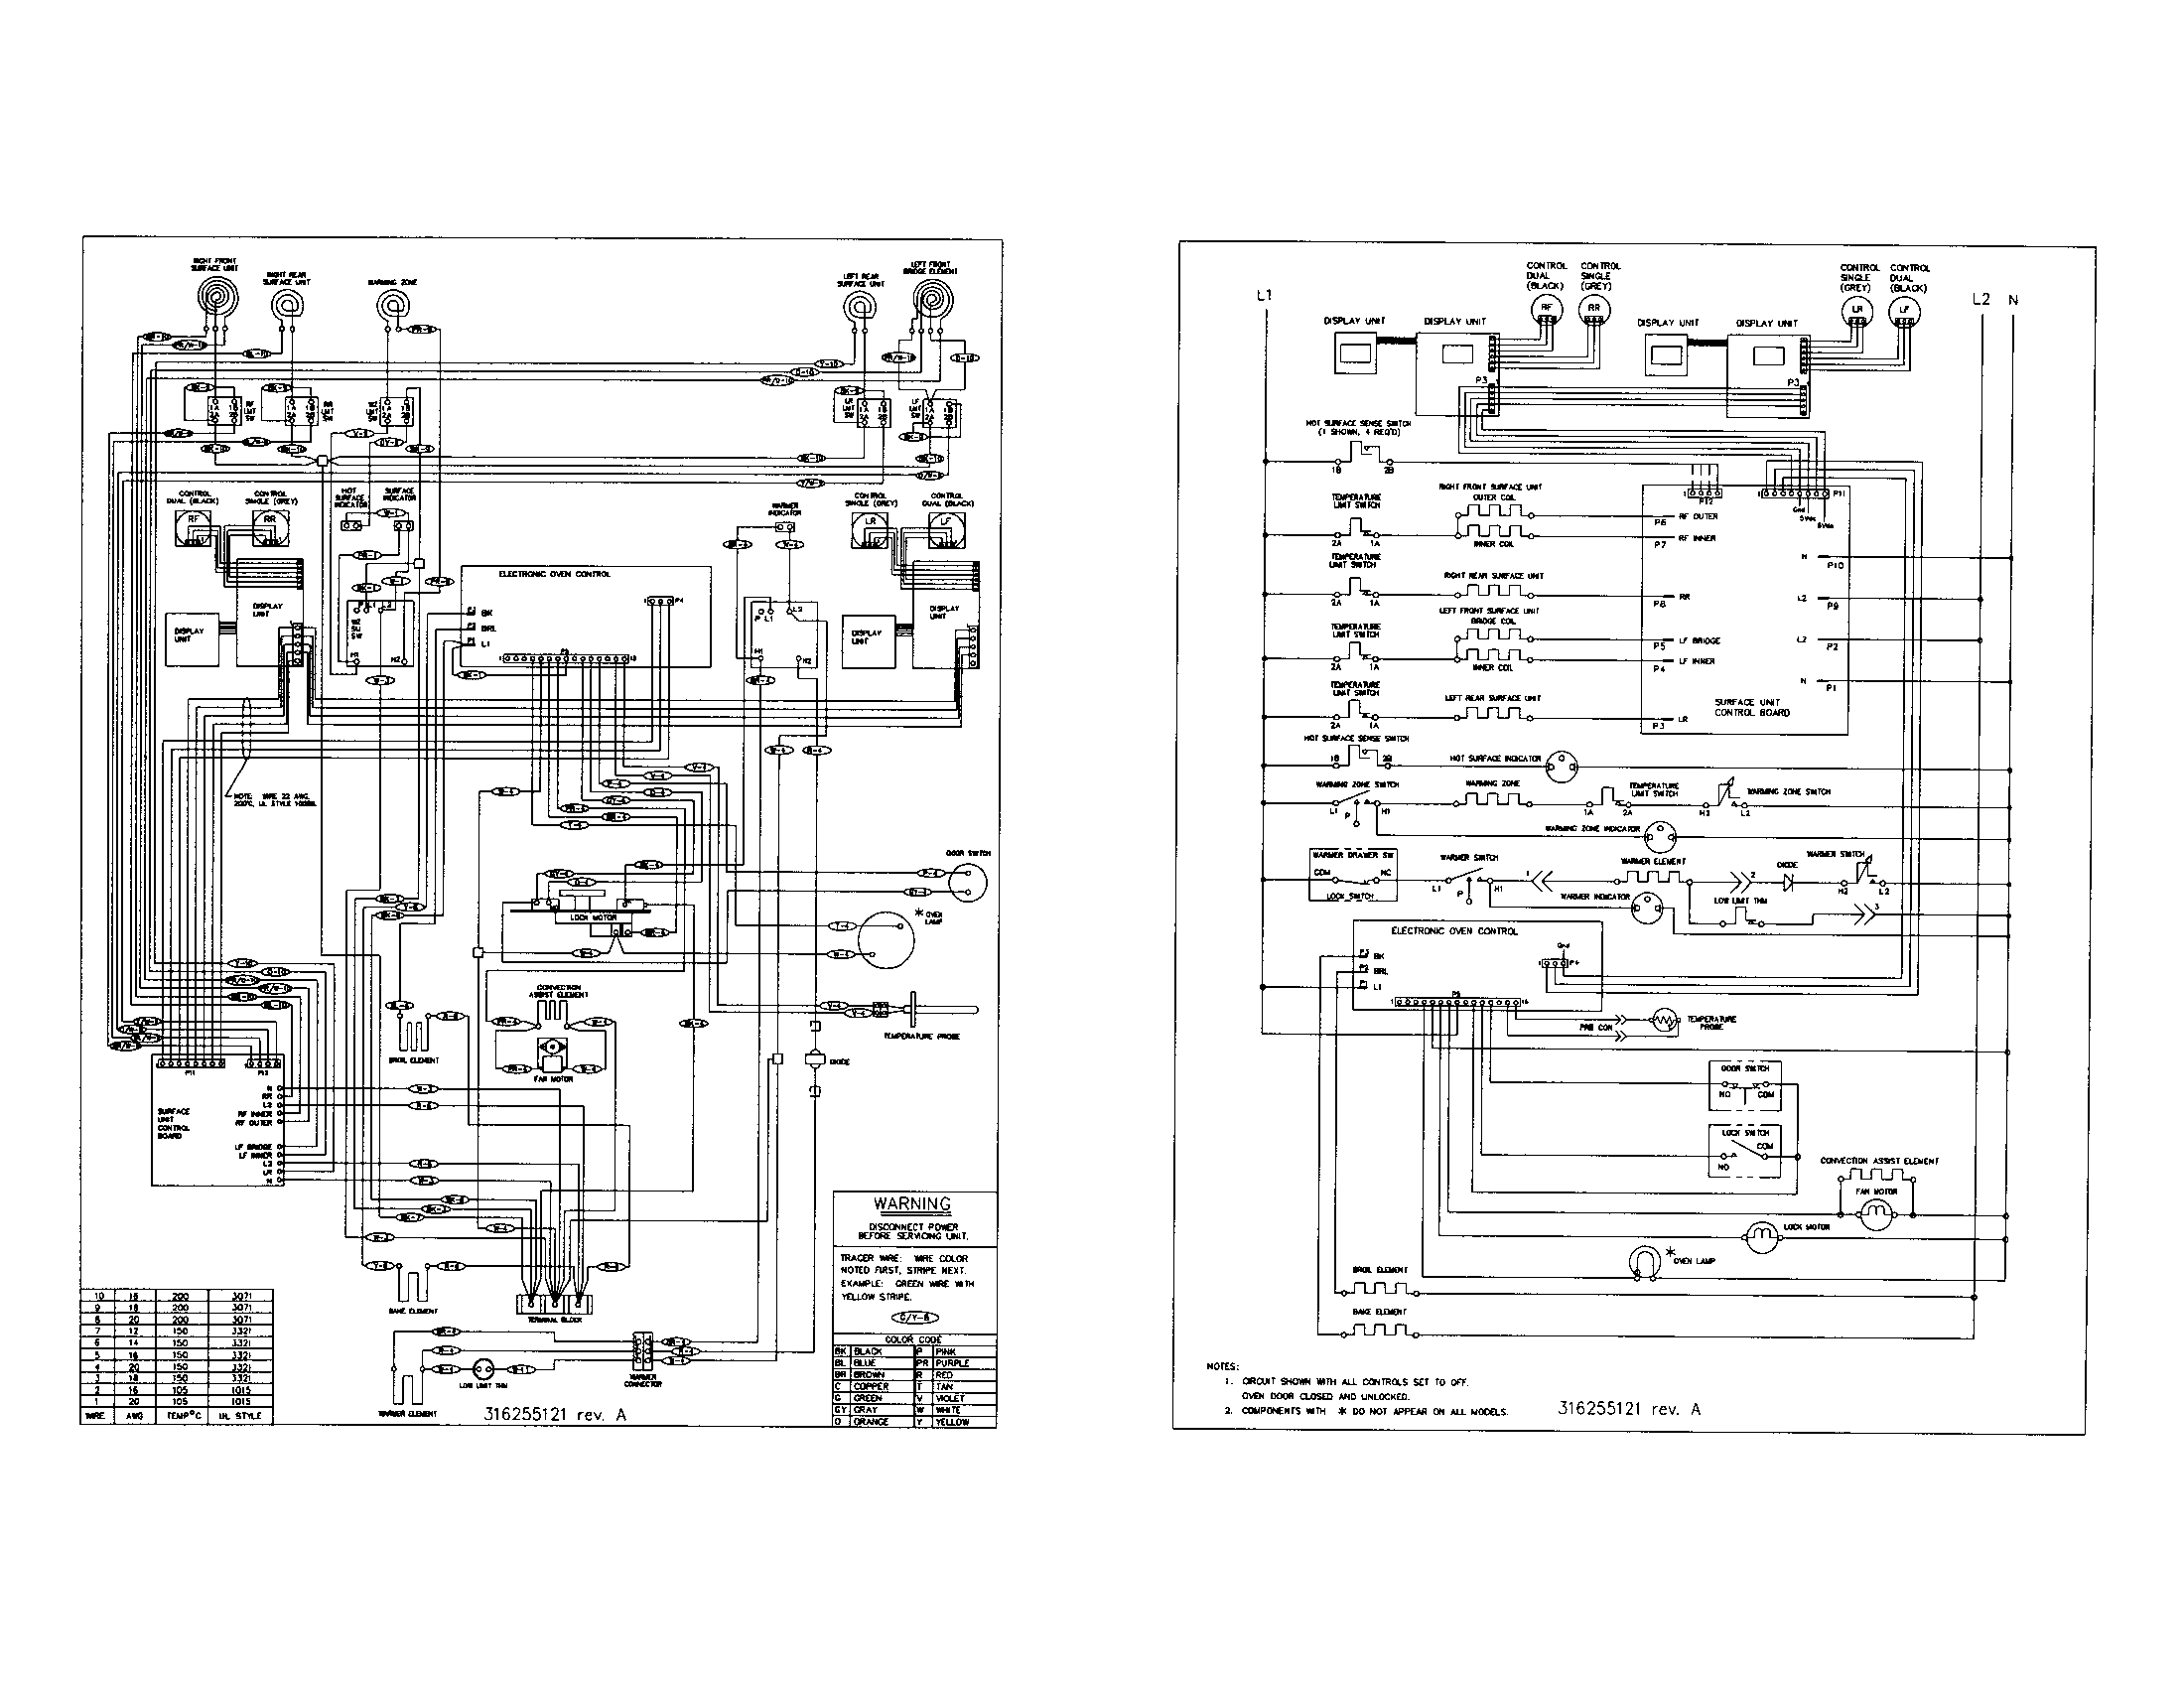 wiring diagram parts wiring diagram for frigidaire refrigerator readingrat net wiring diagram frigidaire dryer at gsmx.co